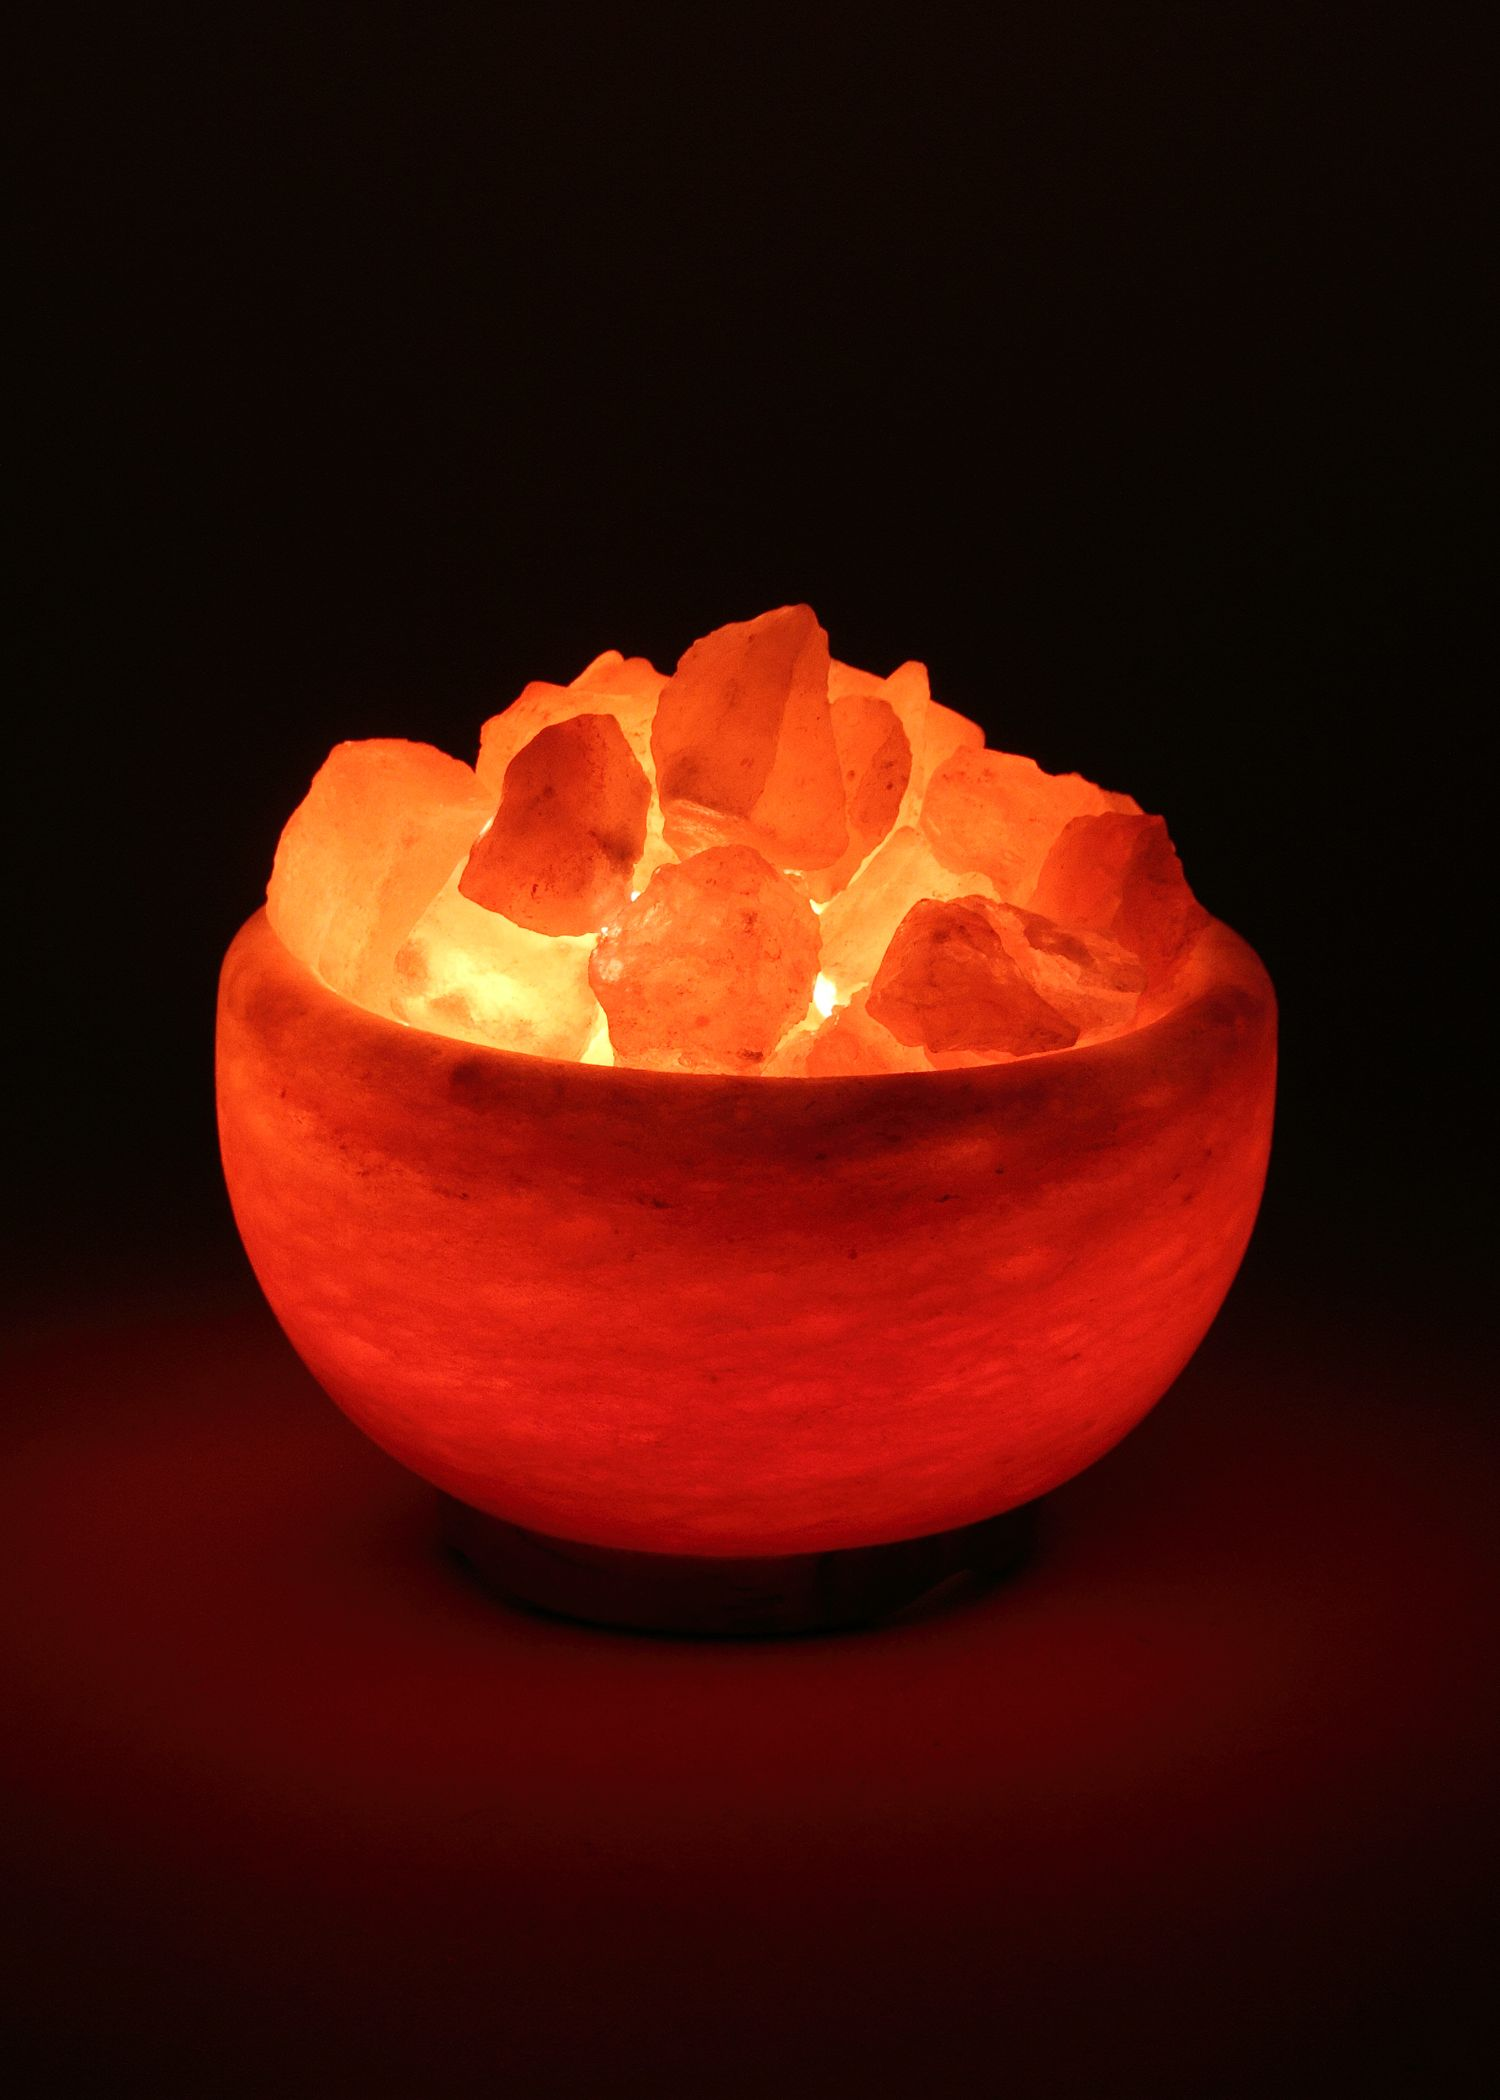 Healthy Life Cycle Retail And Wholesale Himalayan Salt Lamps And